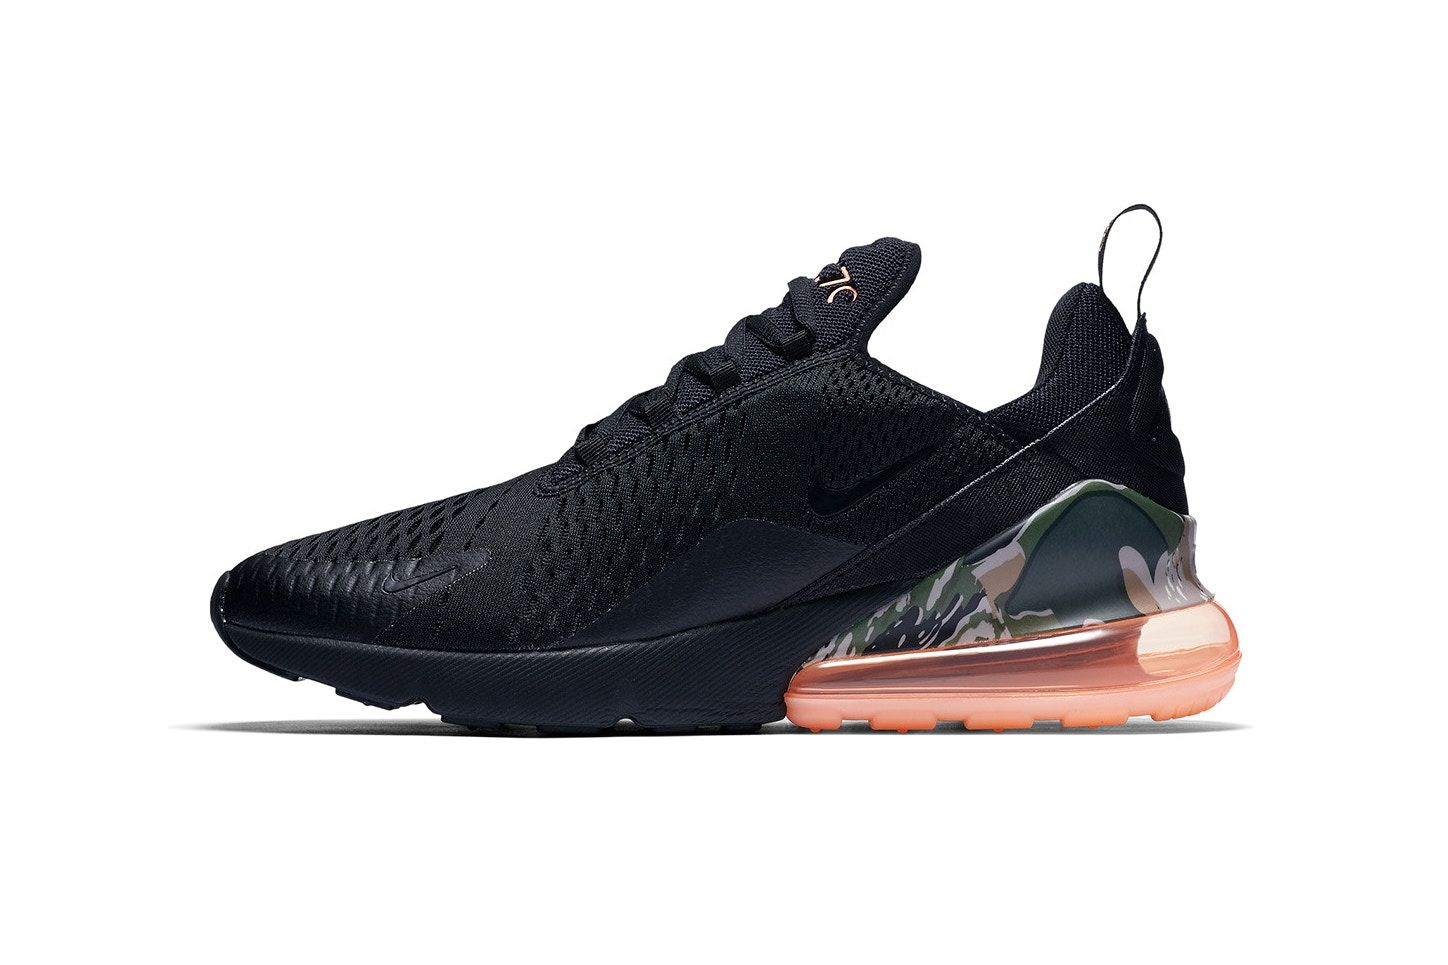 Nike S Air Max 270 Appears In Black Coral Camo Nike Air Max Camo Heels Sneakers Nike Air Max